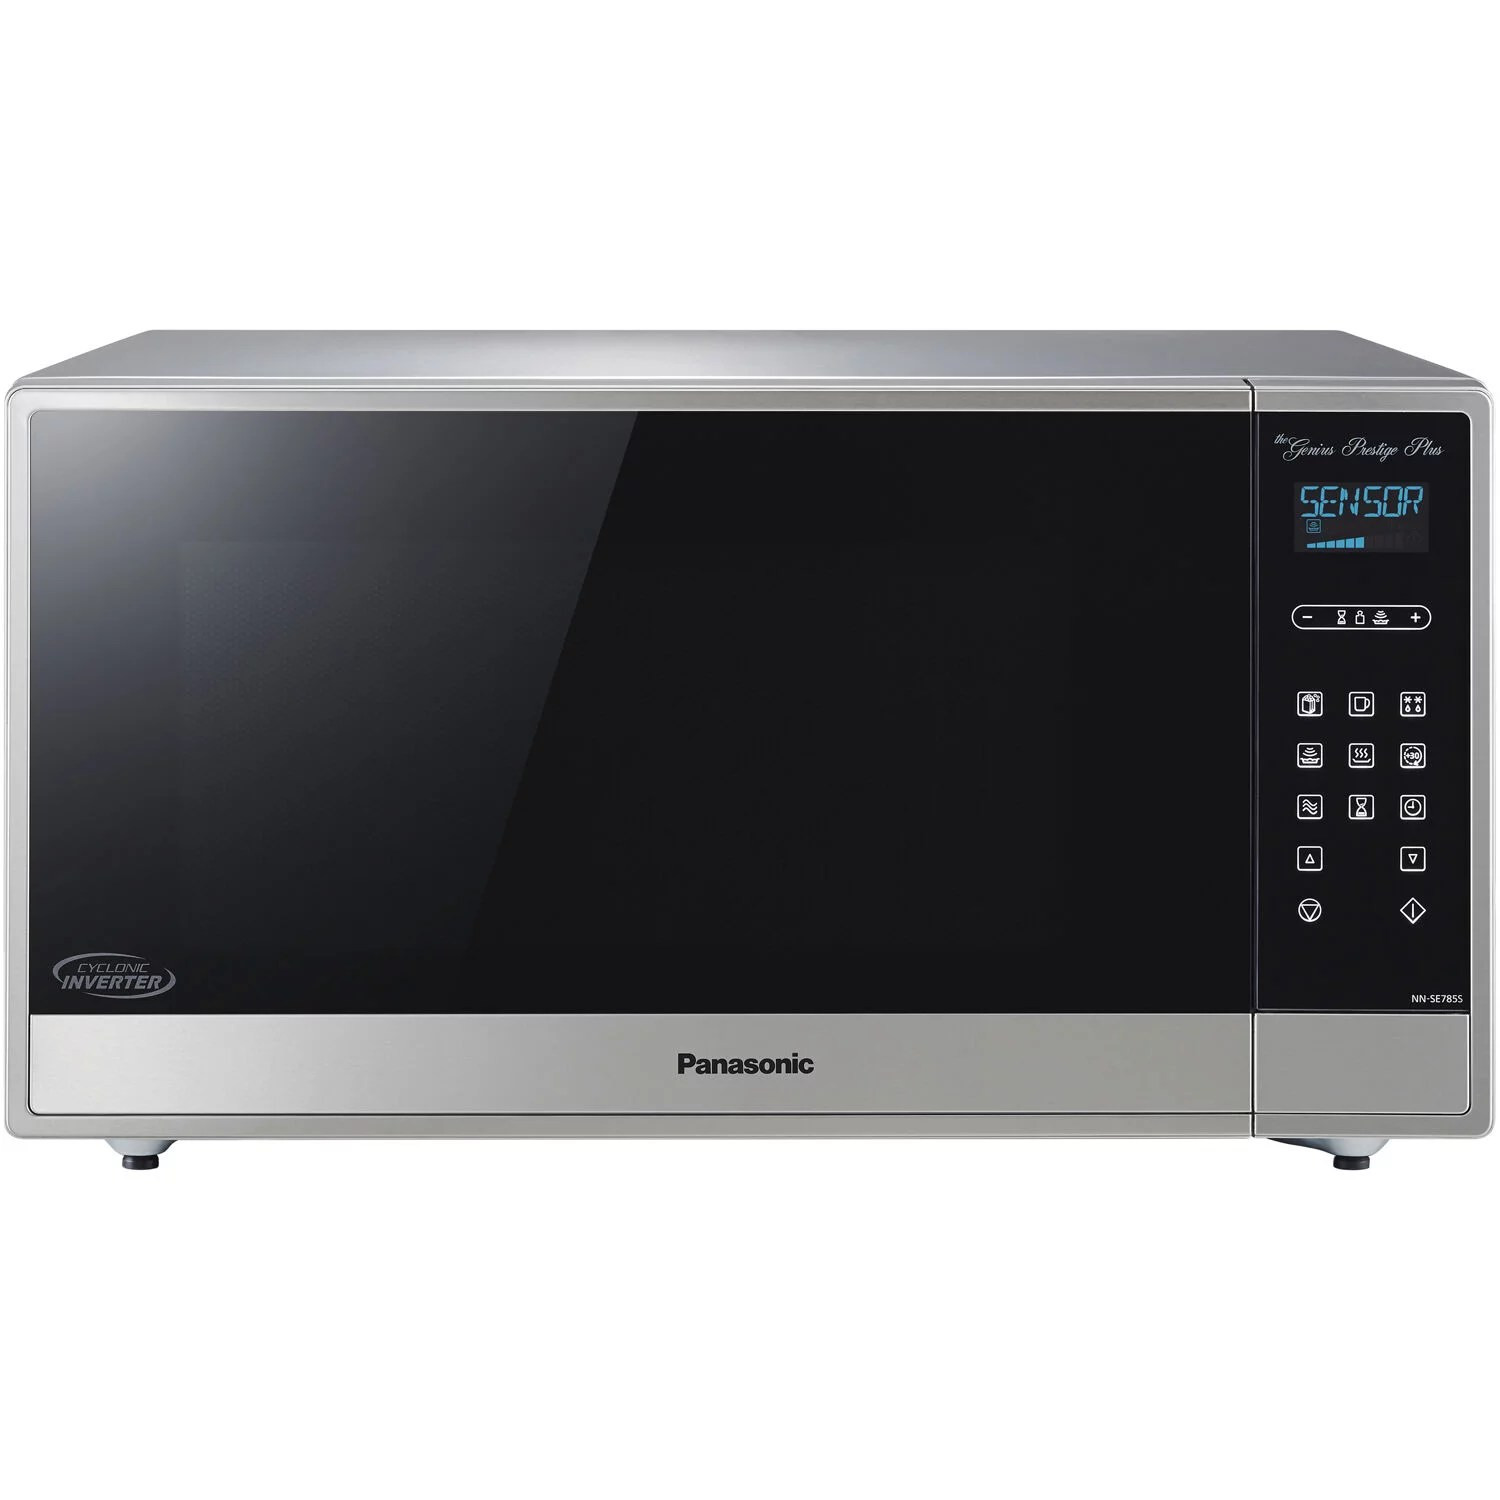 panasonic 1 6 cu ft built in countertop cyclonic wave microwave oven with inverter technology in fingerprint proof stainless steel walmart com